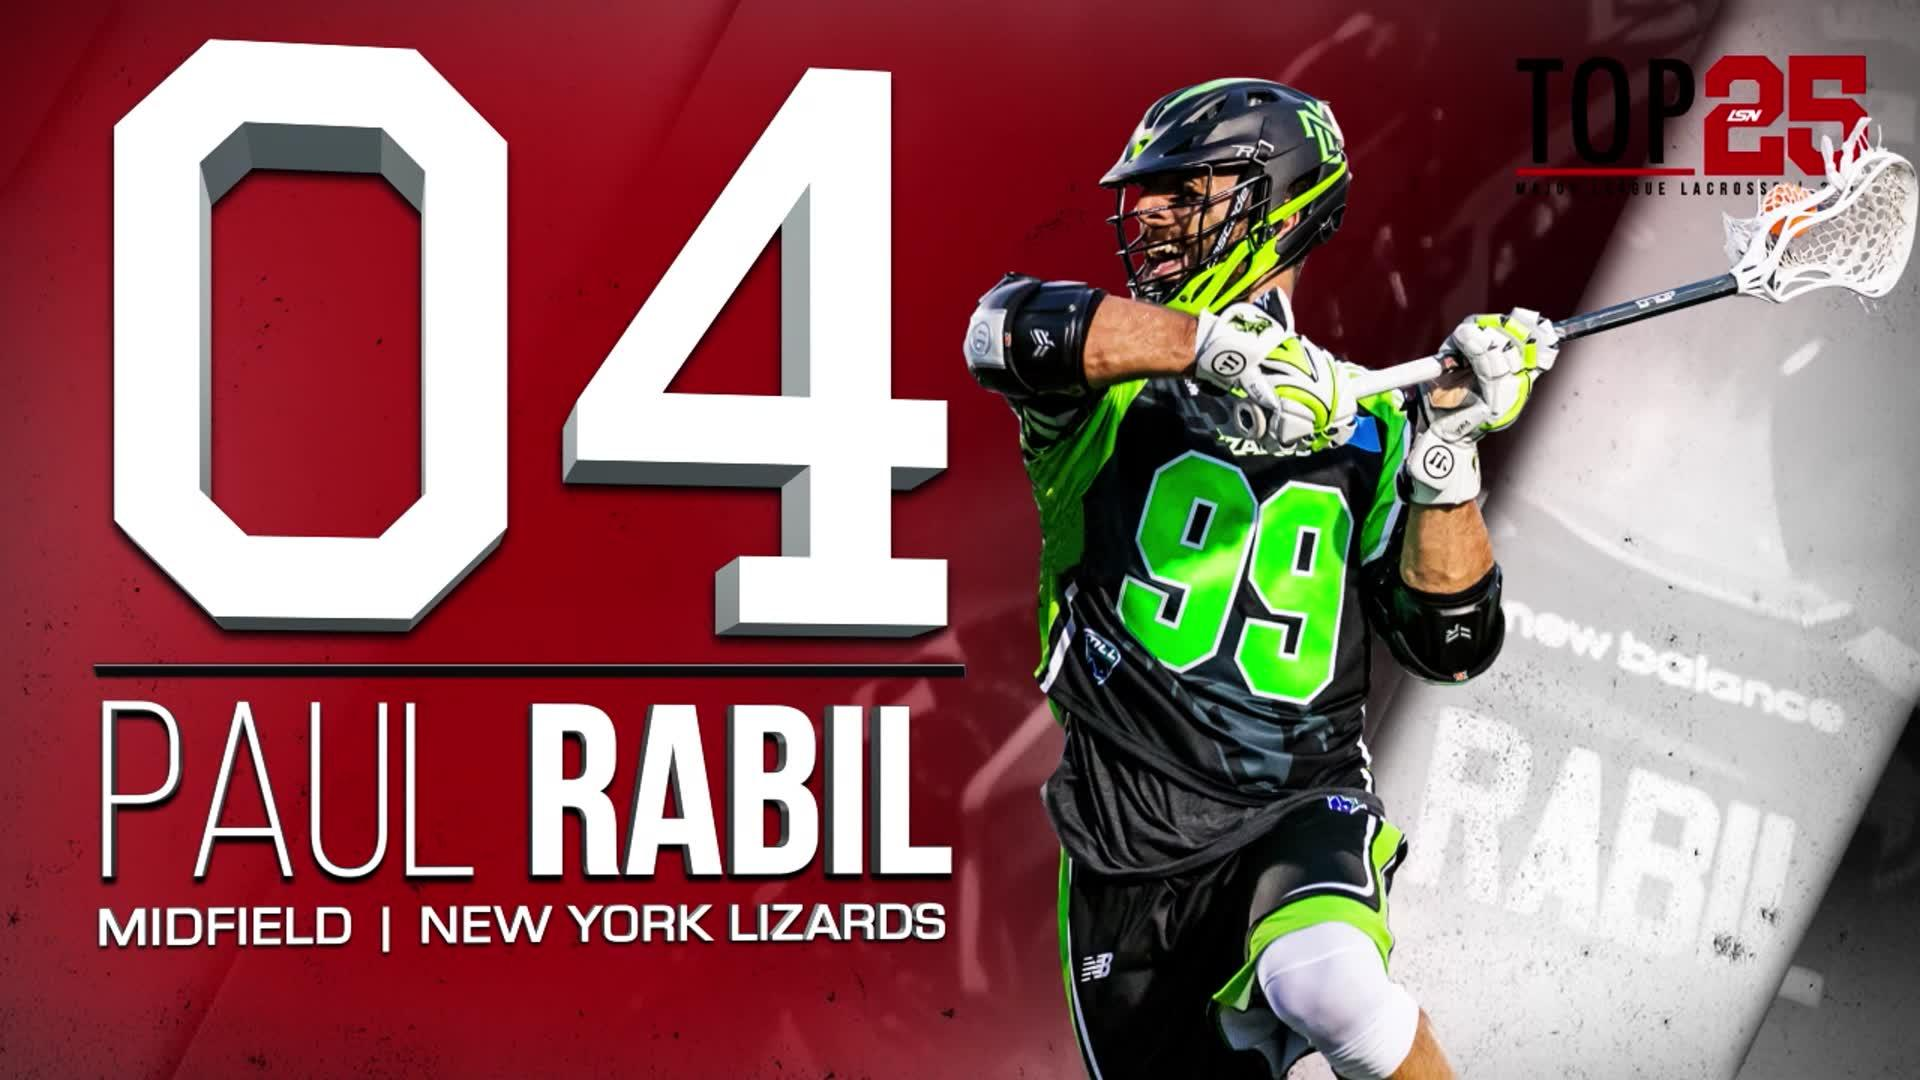 2017 #MLLTop25 Number 4 Paul Rabil